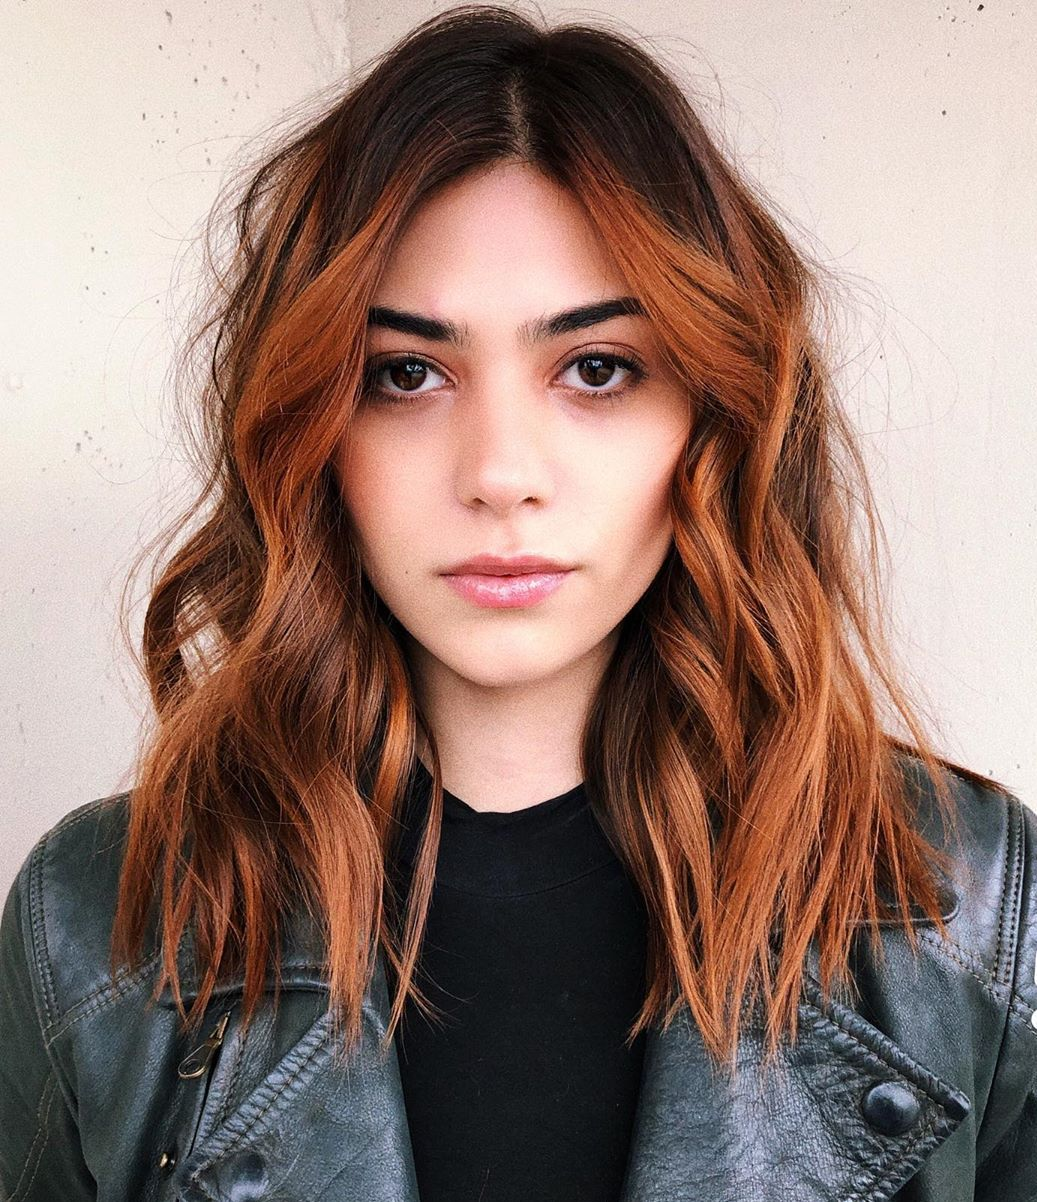 Mid-Length Cut for Thick Hair with Waves